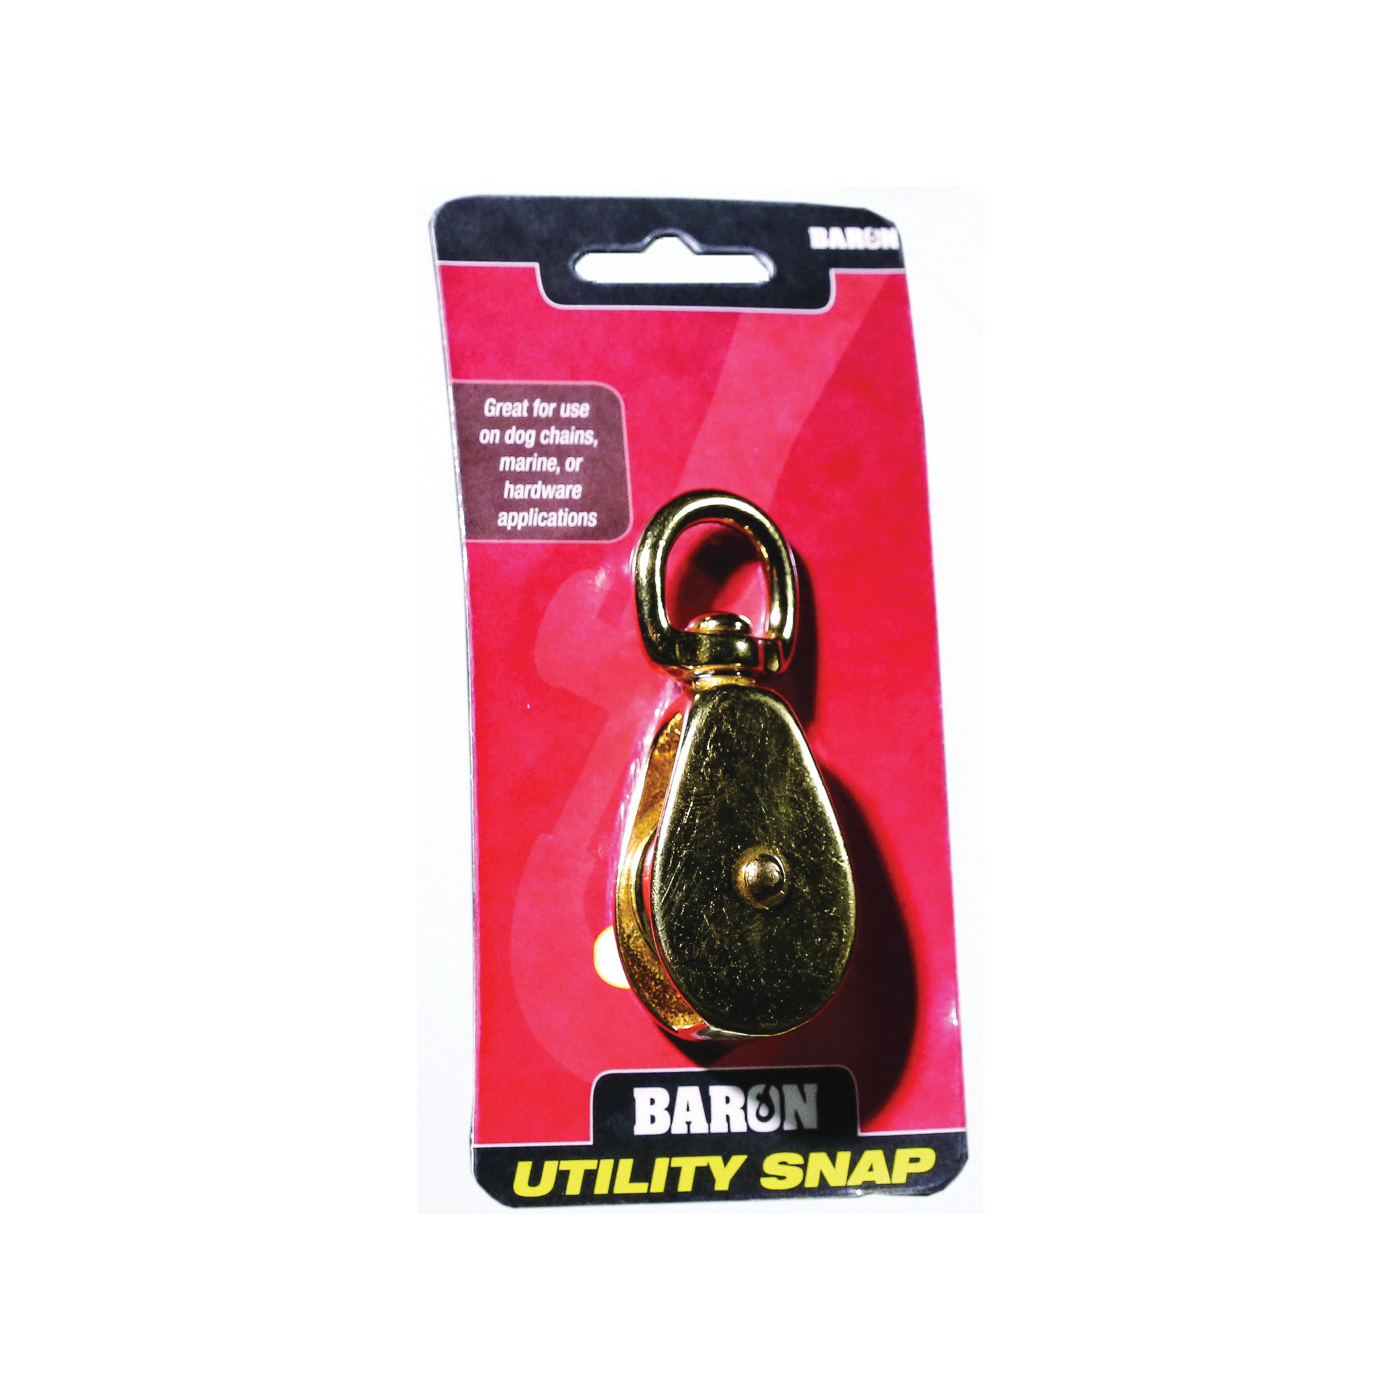 Picture of BARON C-0173B-2 Single Rope Pulley, 7/16 in Rope, 50 lb Working Load, 2 in Sheave, Nickel